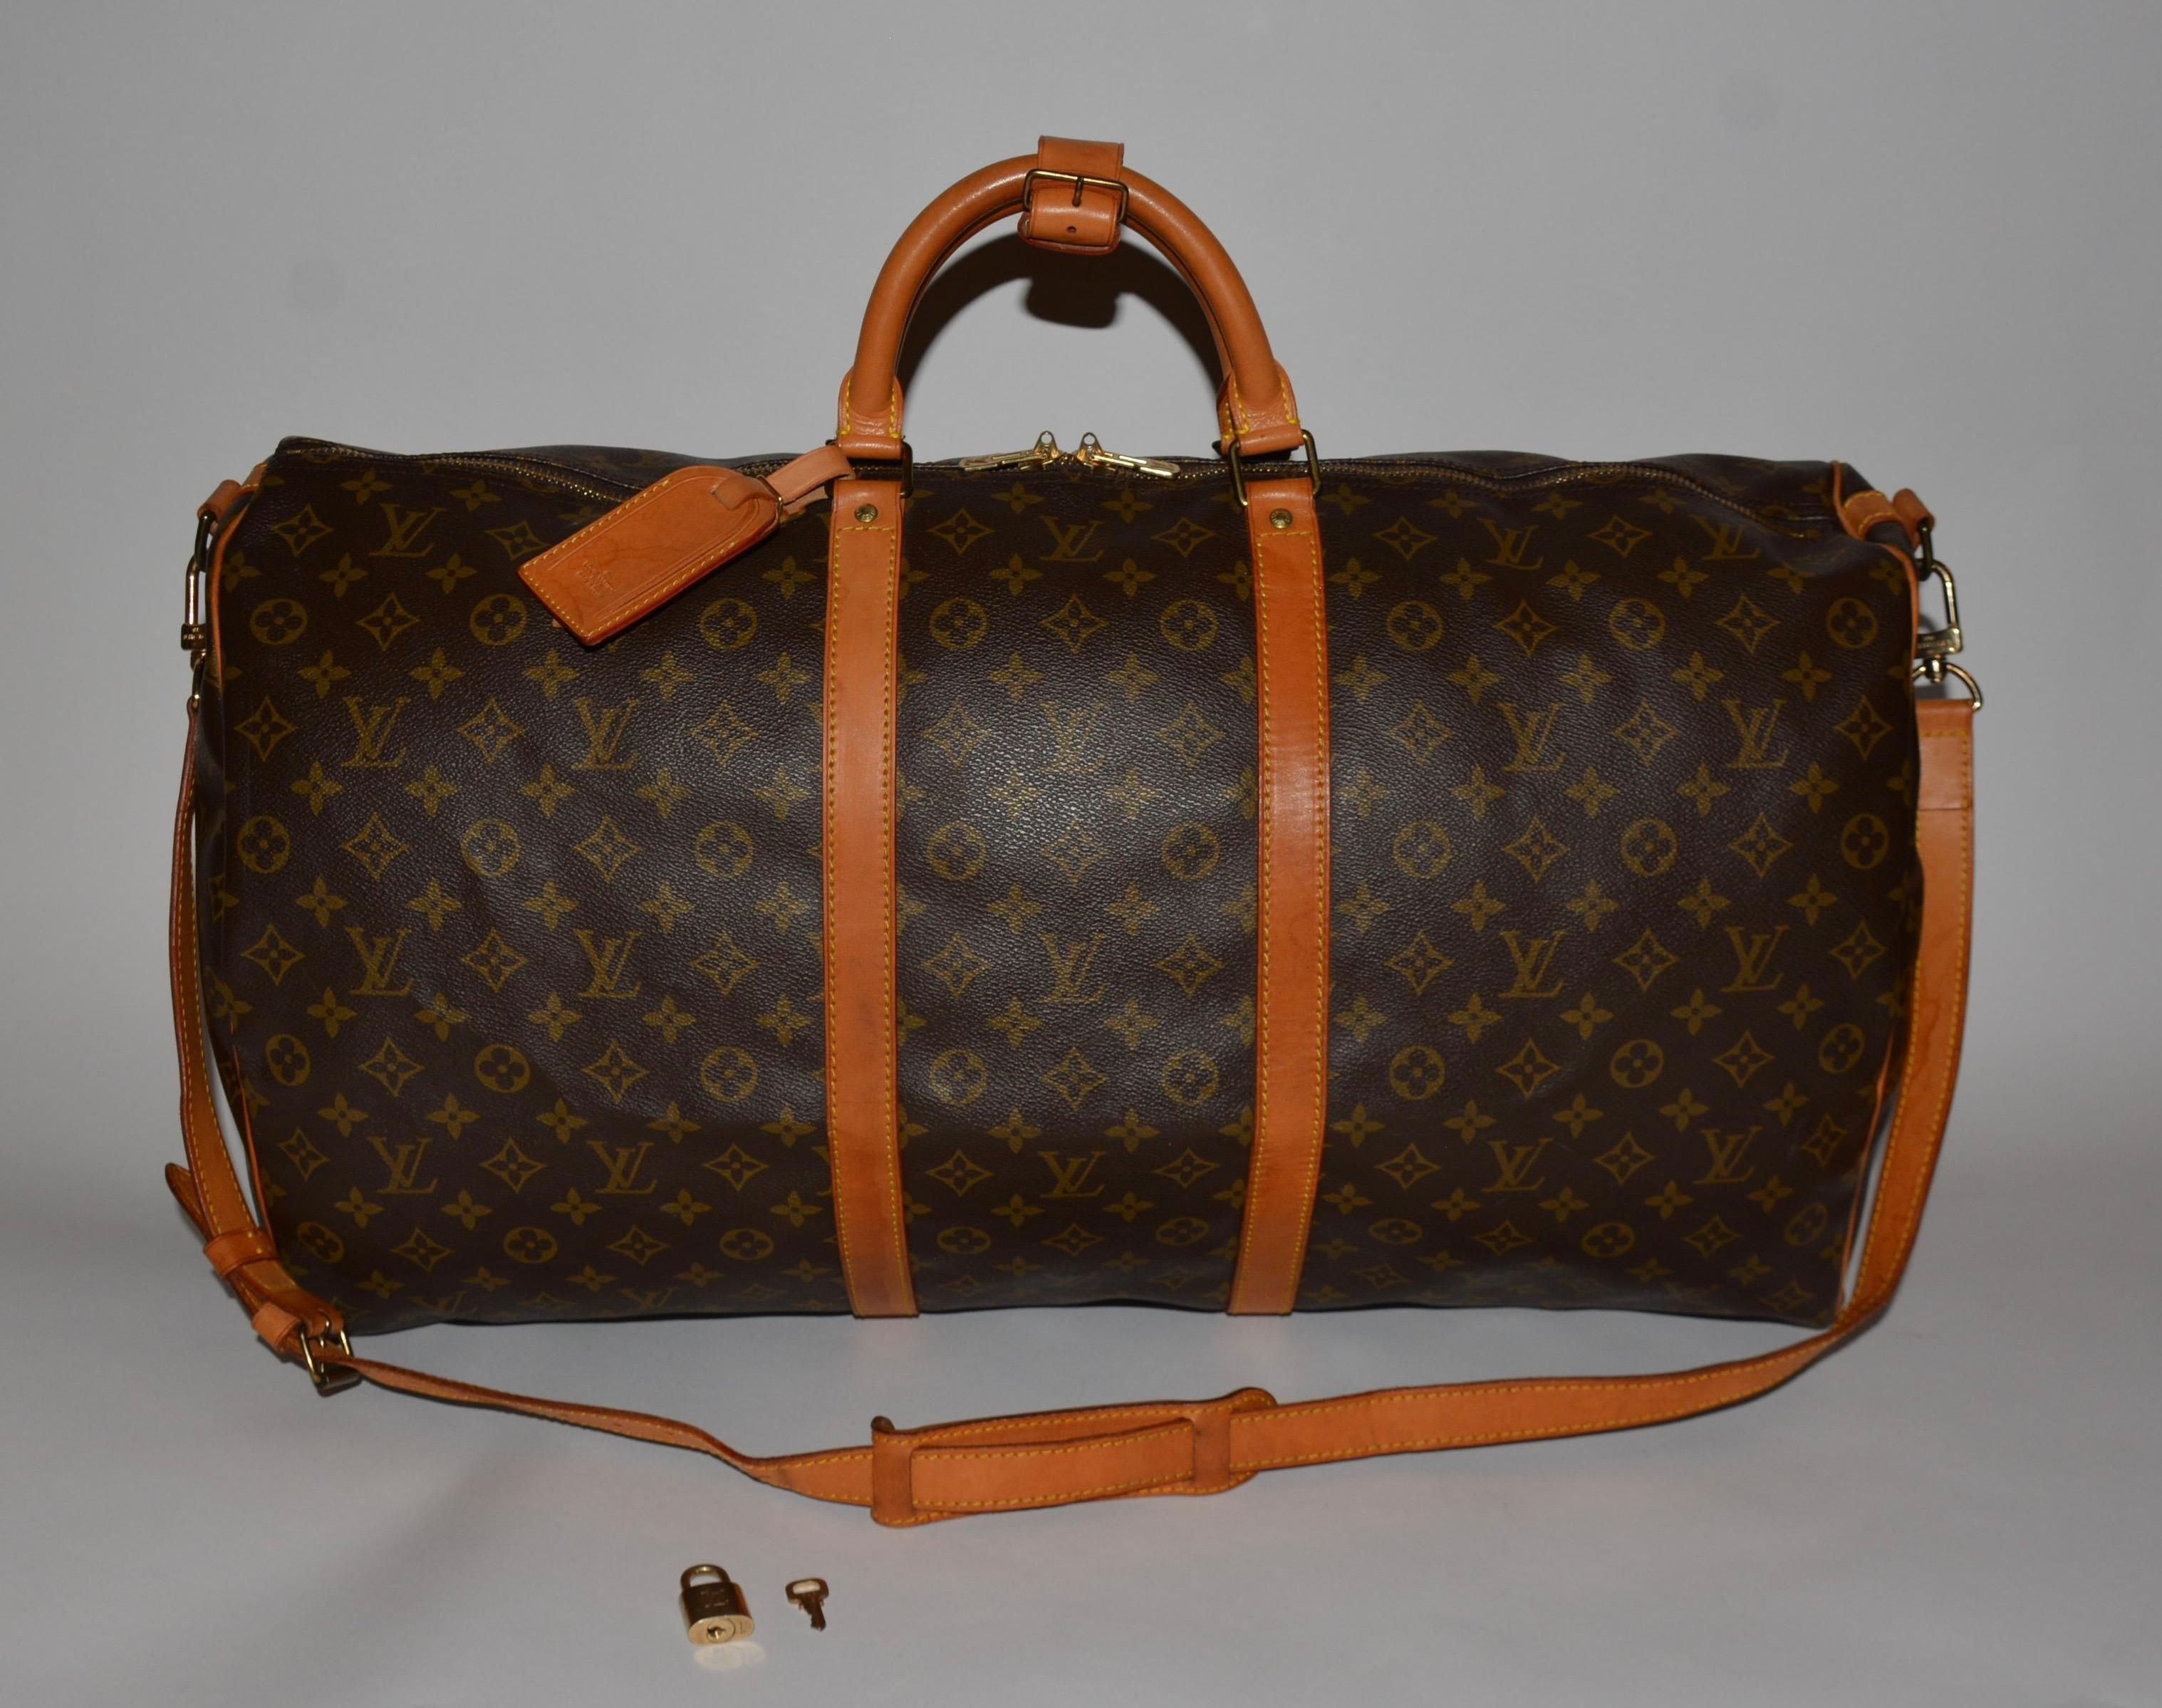 423794a7273d Save 73% on the Louis Vuitton Monogram Canvas Keepall Bandouliere 55 Brown  Travel Bag! This travel bag is a top 10 member favorite on Tradesy.